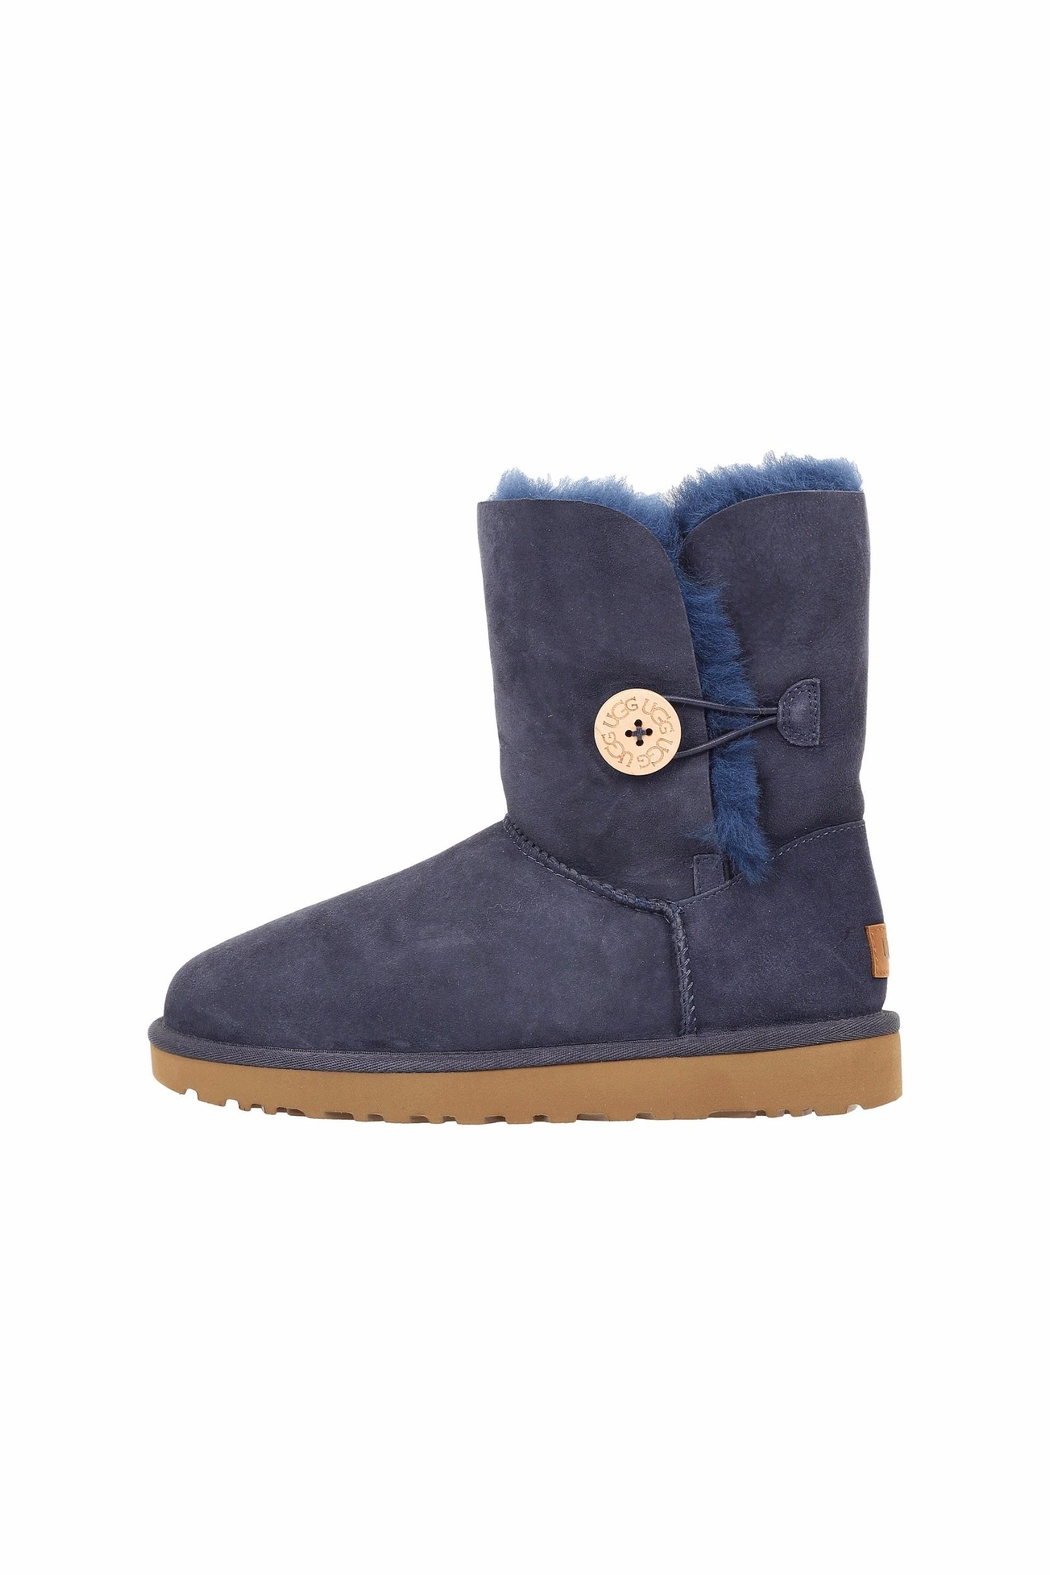 UGG Australia Ugg Bailey Button-Ii - Main Image